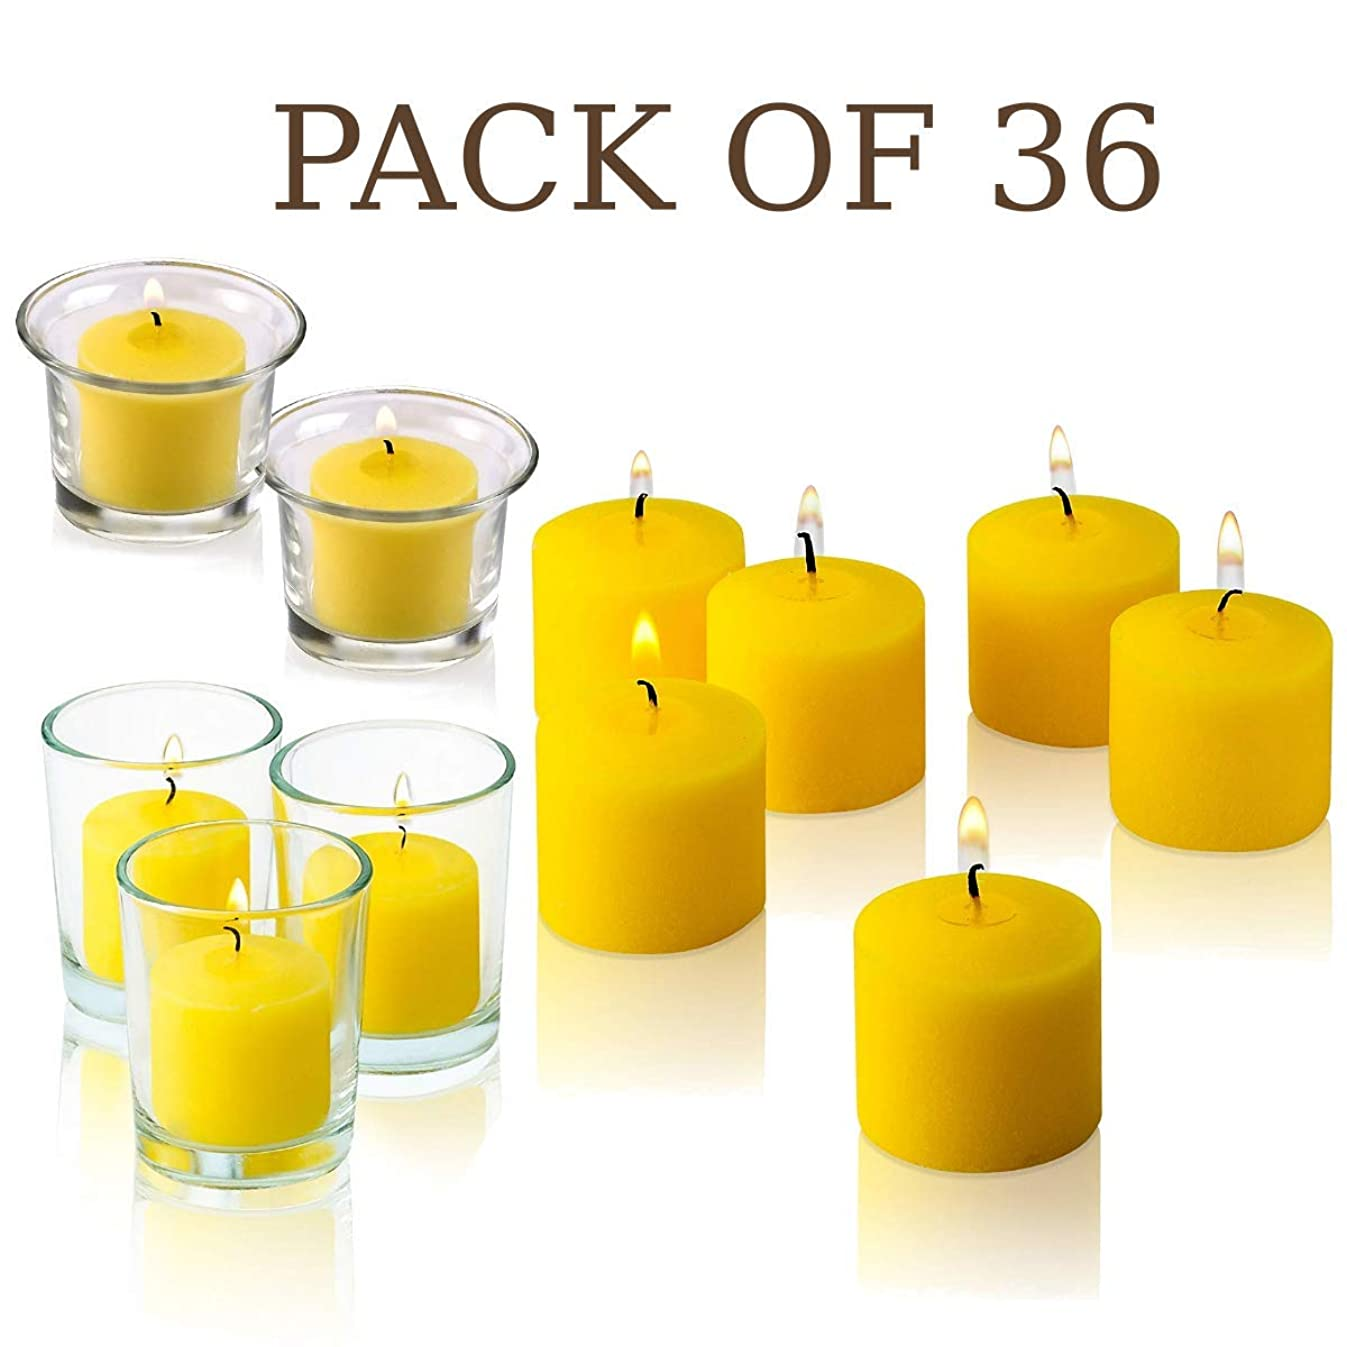 Votive Citronella Candle - Pack of 36 - Made from High Scented Citronella to Scare Away Mosquito, Bug and Flies – for Outdoor/Indoor Use - 10 Hour Burn Time - Made in USA